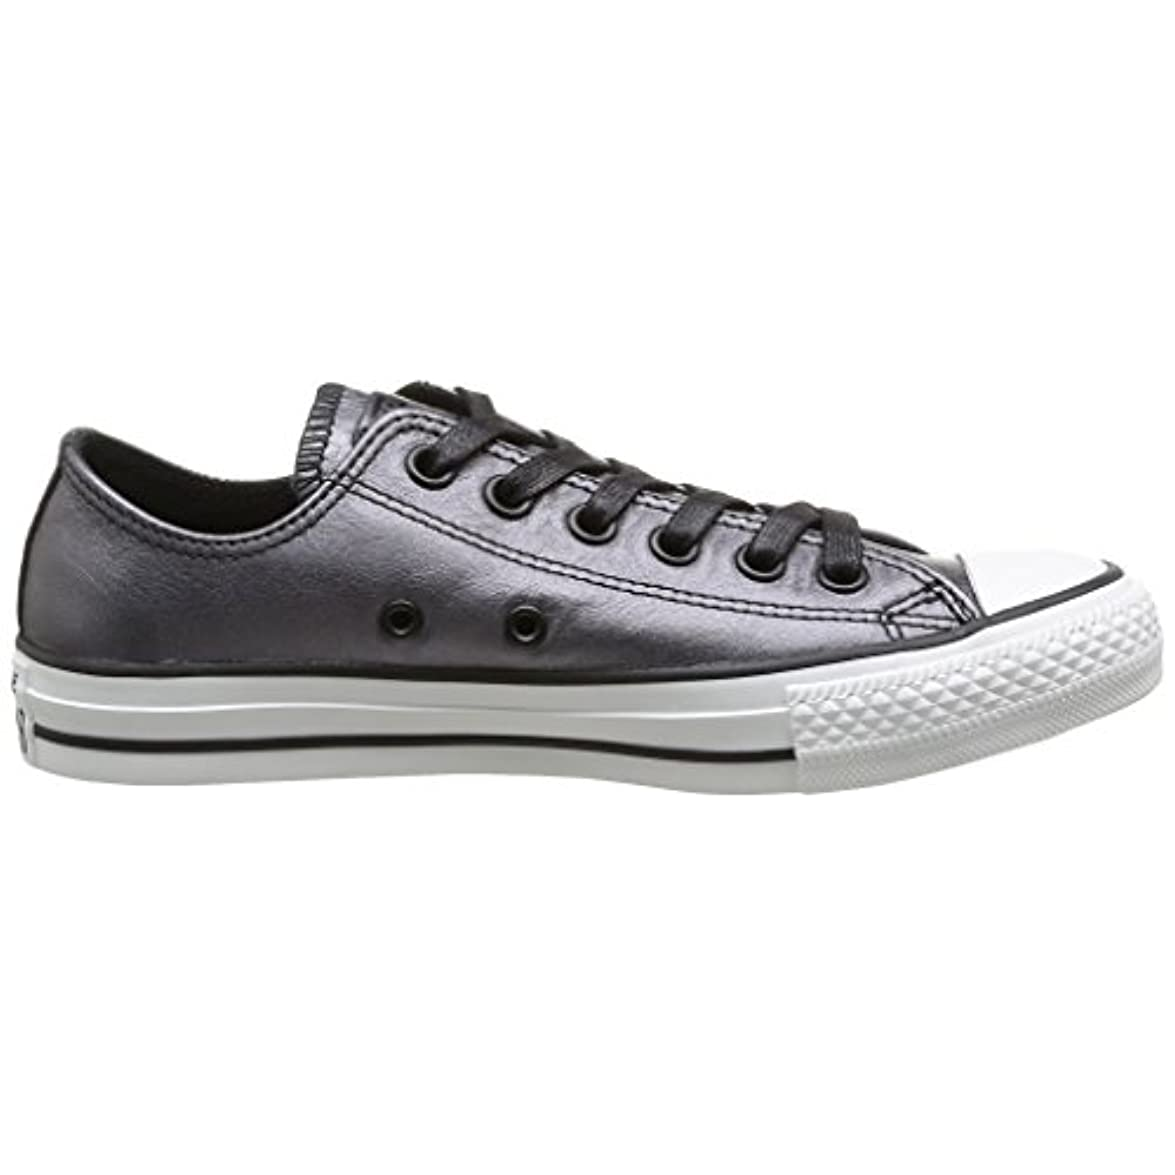 Converse Chuck Taylor All Star Femme Color Shift Ox Sneaker Donna